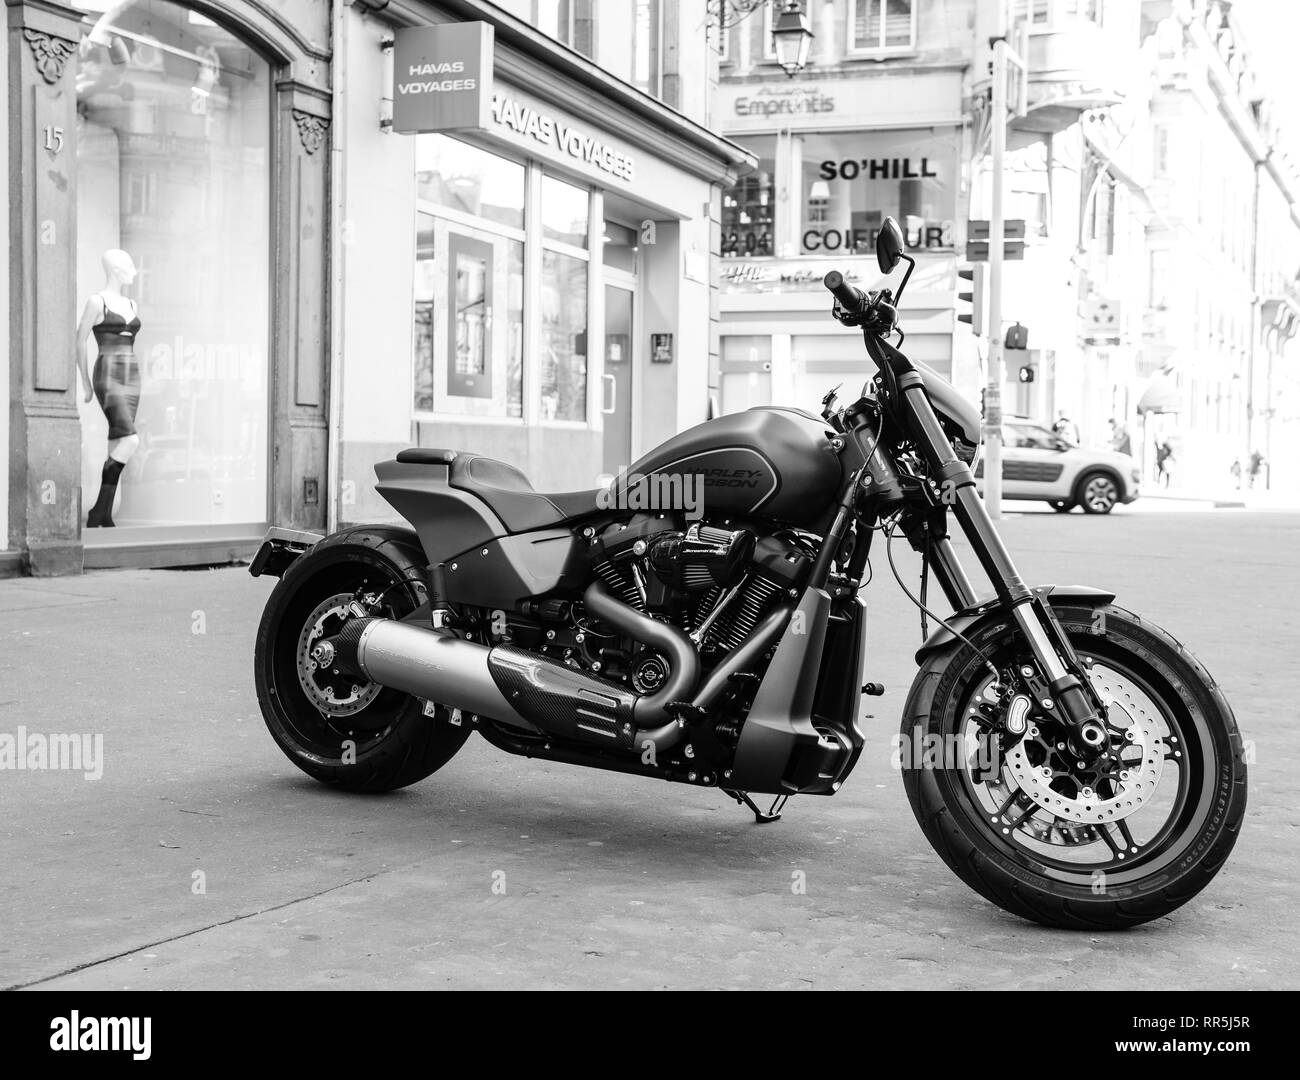 Strasbourg, France - Feb 16, 2018: Parked in the city brand new Harley Davidson bike motorbike with shops and buildings in the background black and white - Stock Image